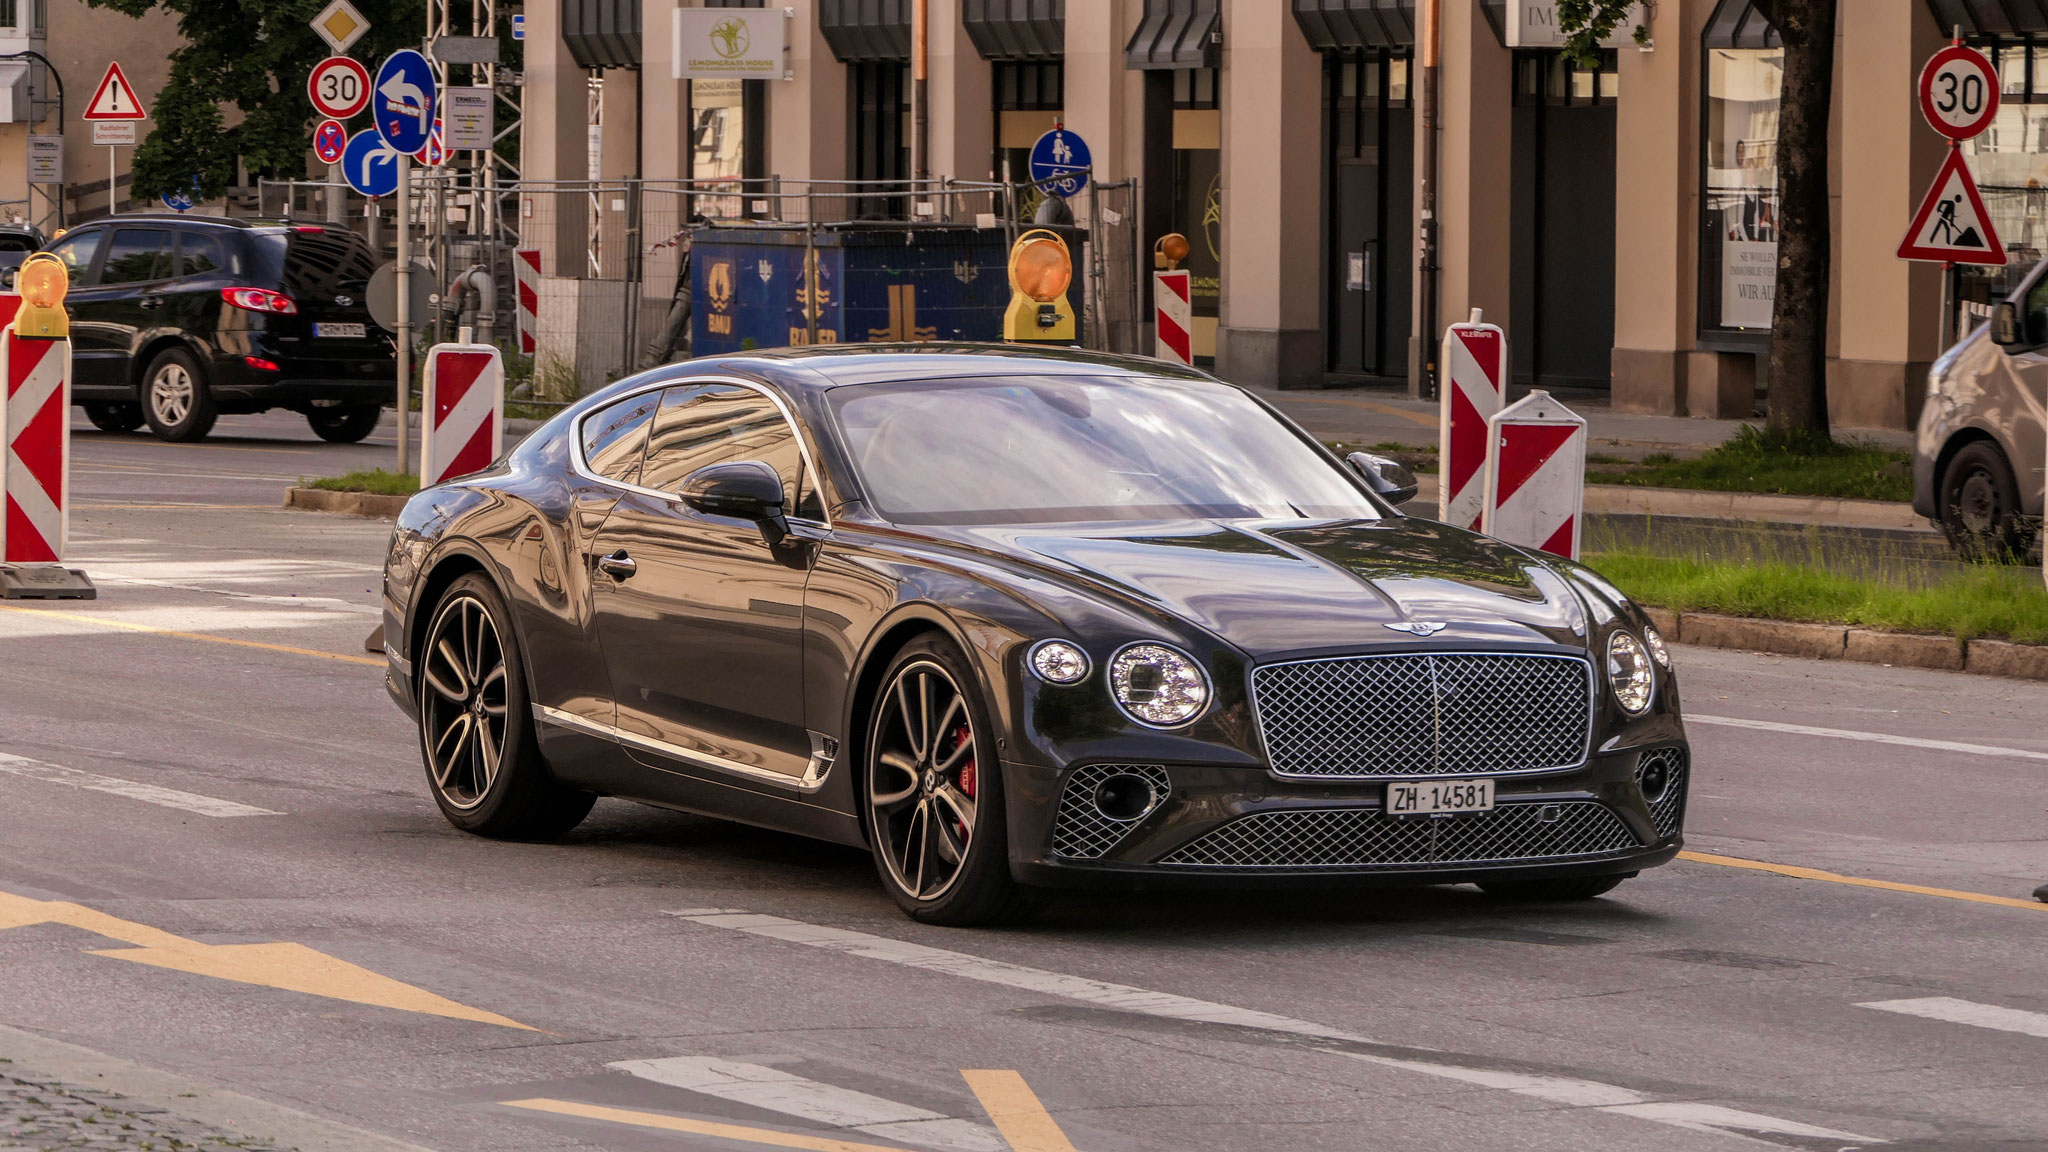 Bentley Continental GT - ZH-14581 (CH)